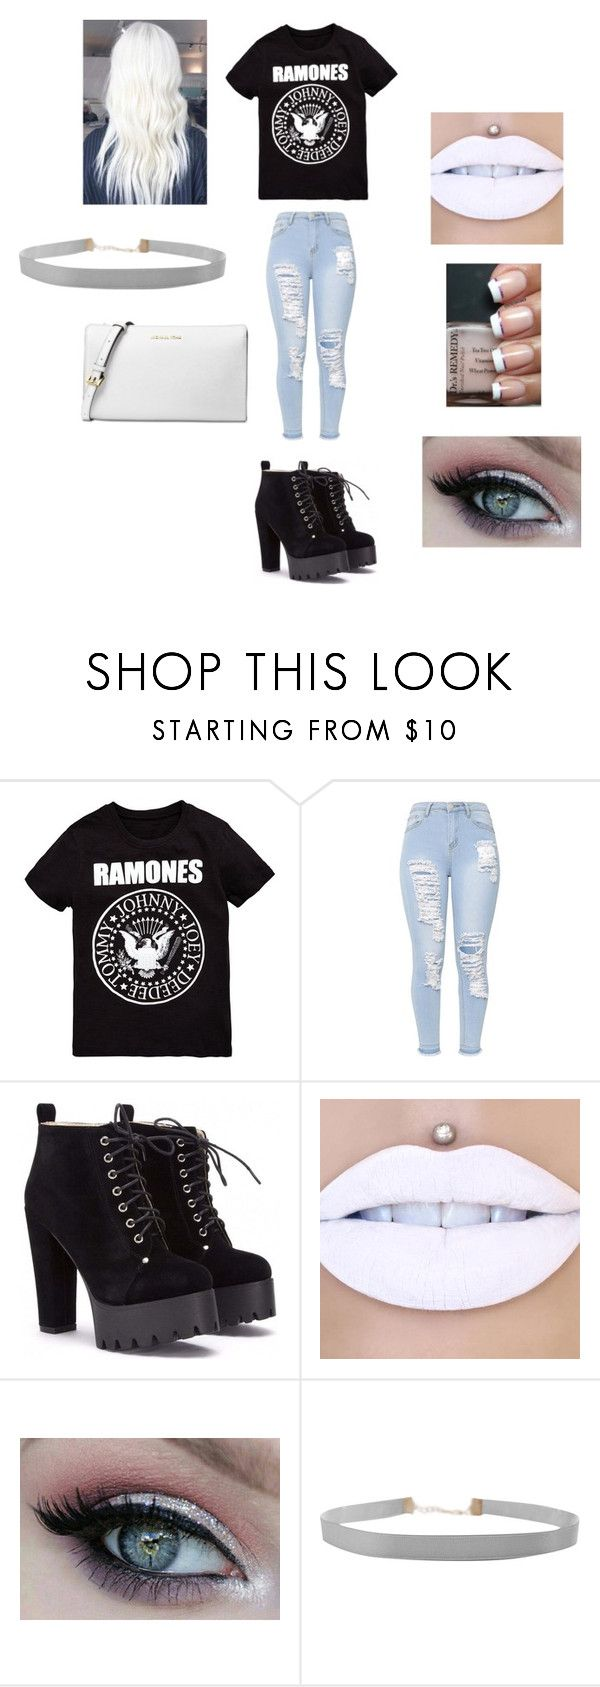 """For A Ramones Fan"" by mychristapie on Polyvore featuring Humble Chic and Michael Kors"